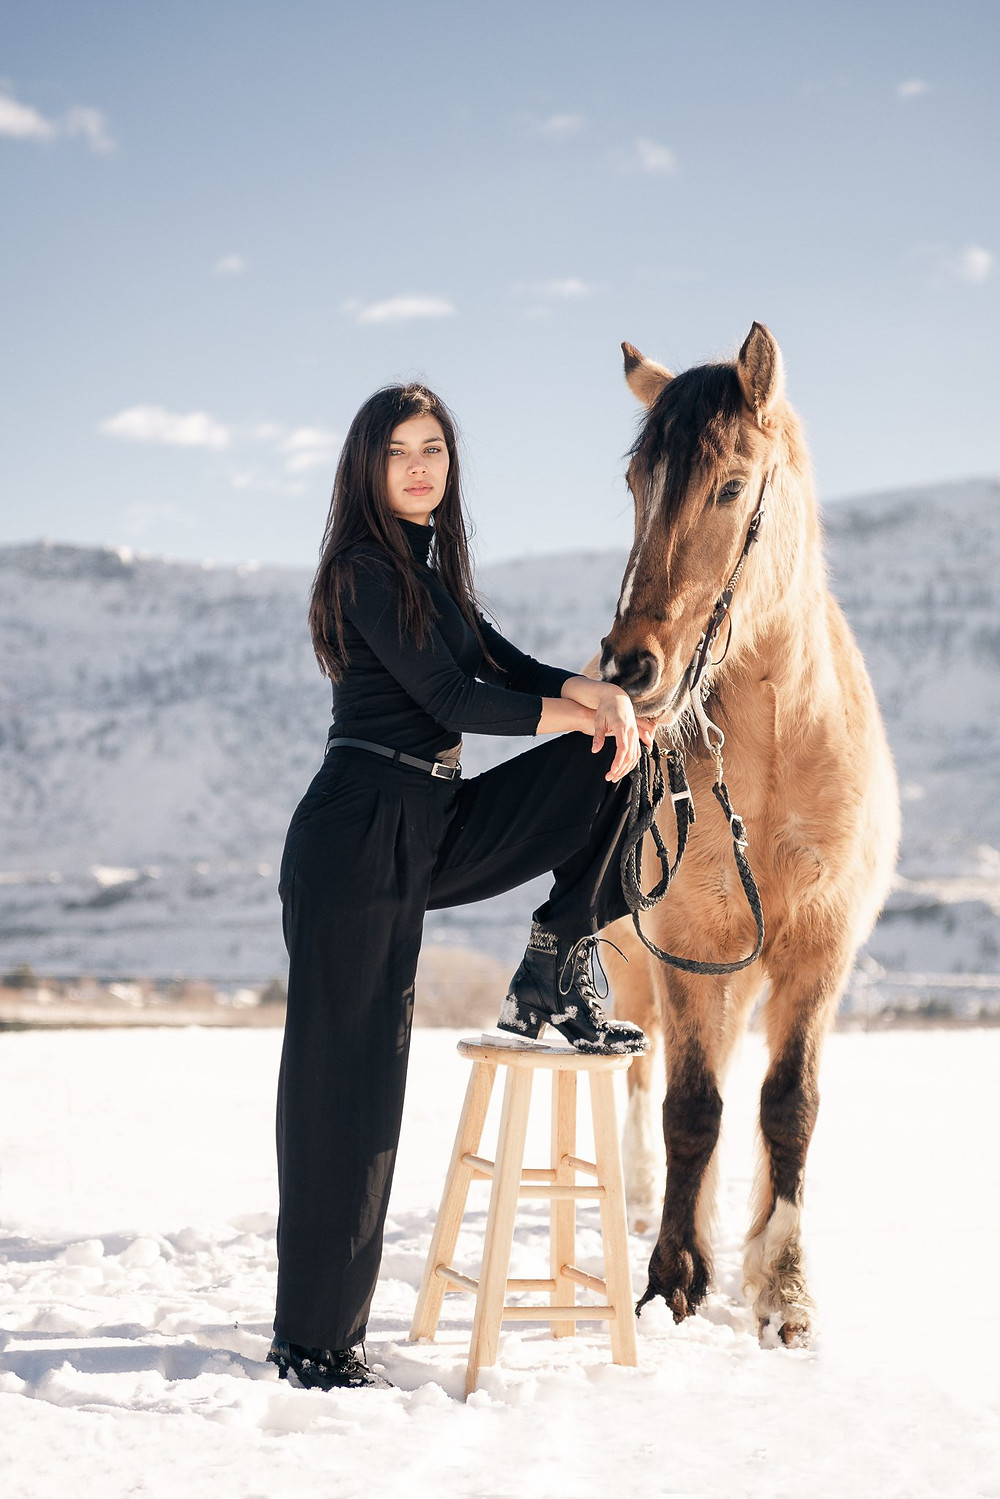 a girl wearing all black, with long dark hair, standing next to her buckskin mustang